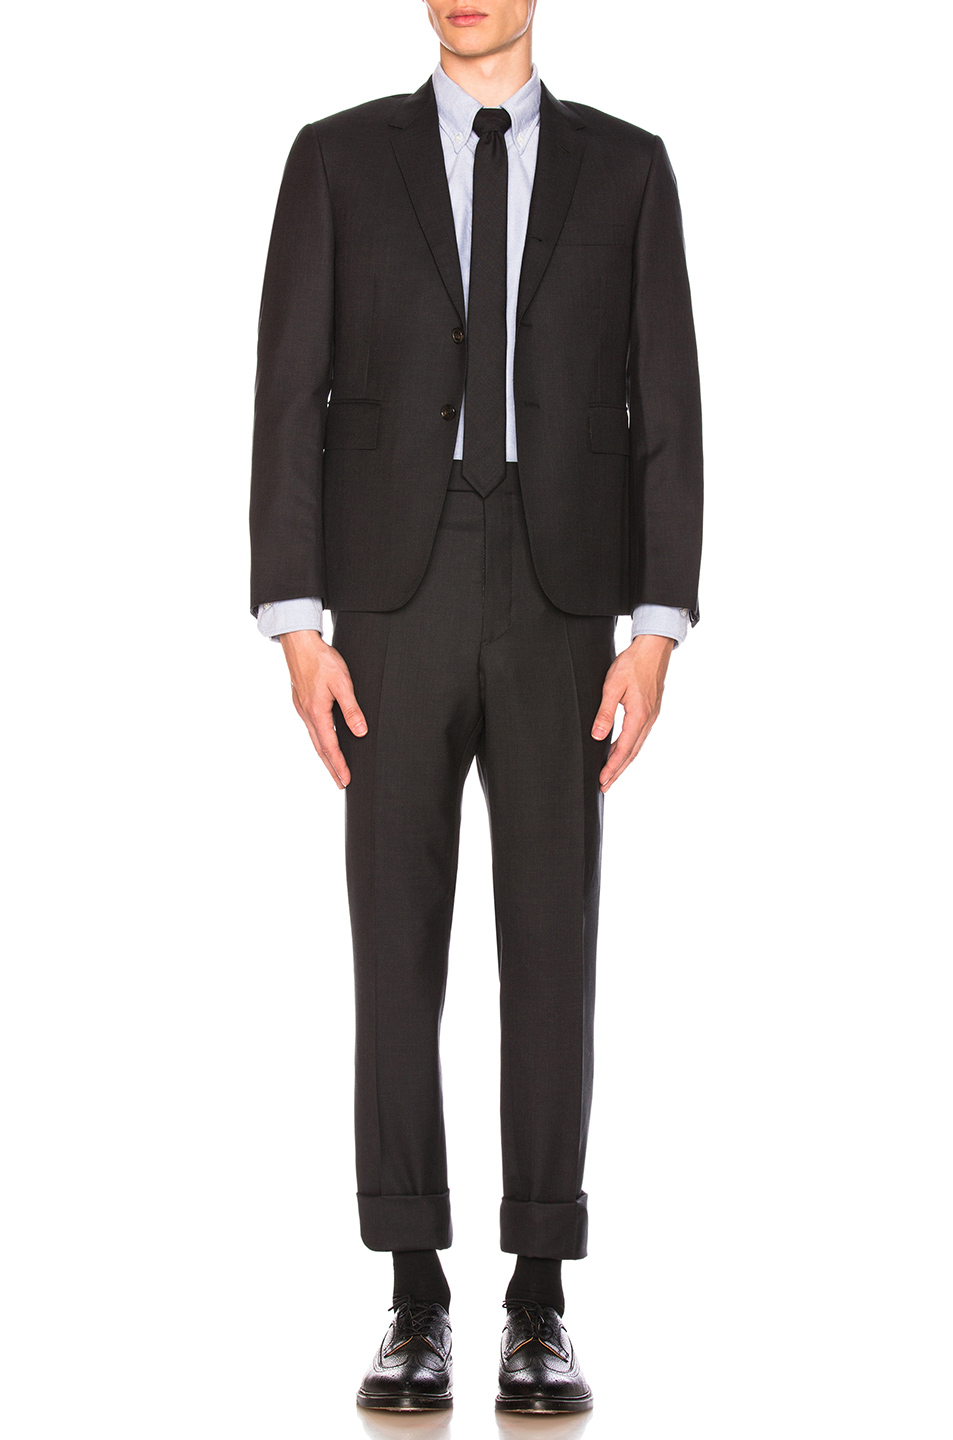 e99a5527dc53 Buy Original Thom Browne Classic Wool Suit at Indonesia